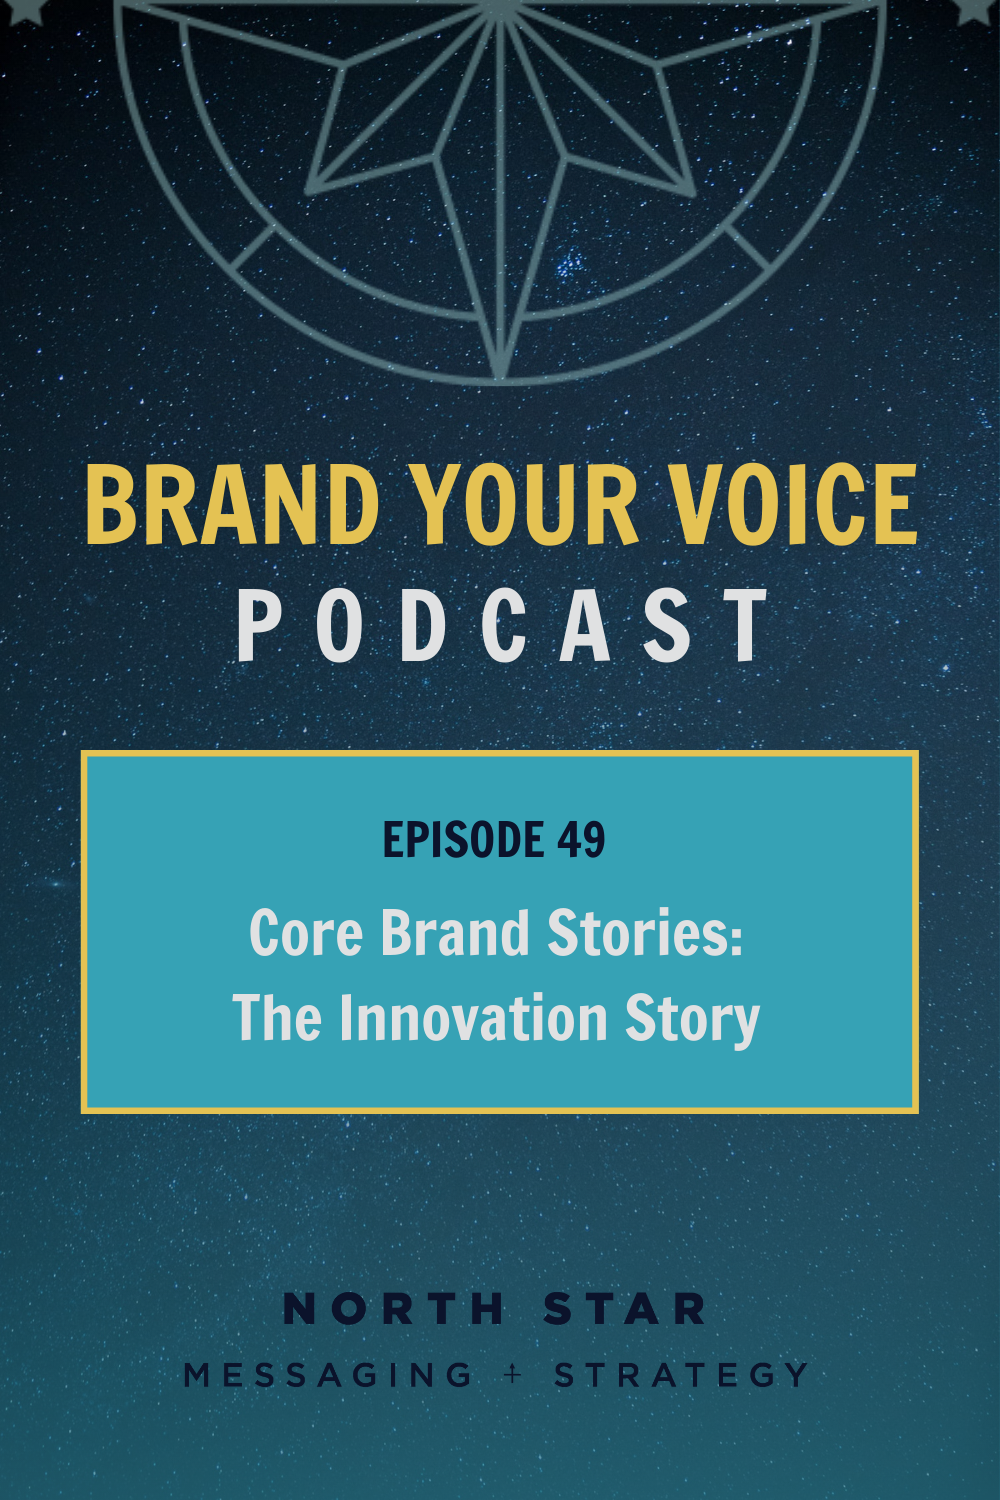 EPISODE 49: Core Brand Stories: The Innovation Story